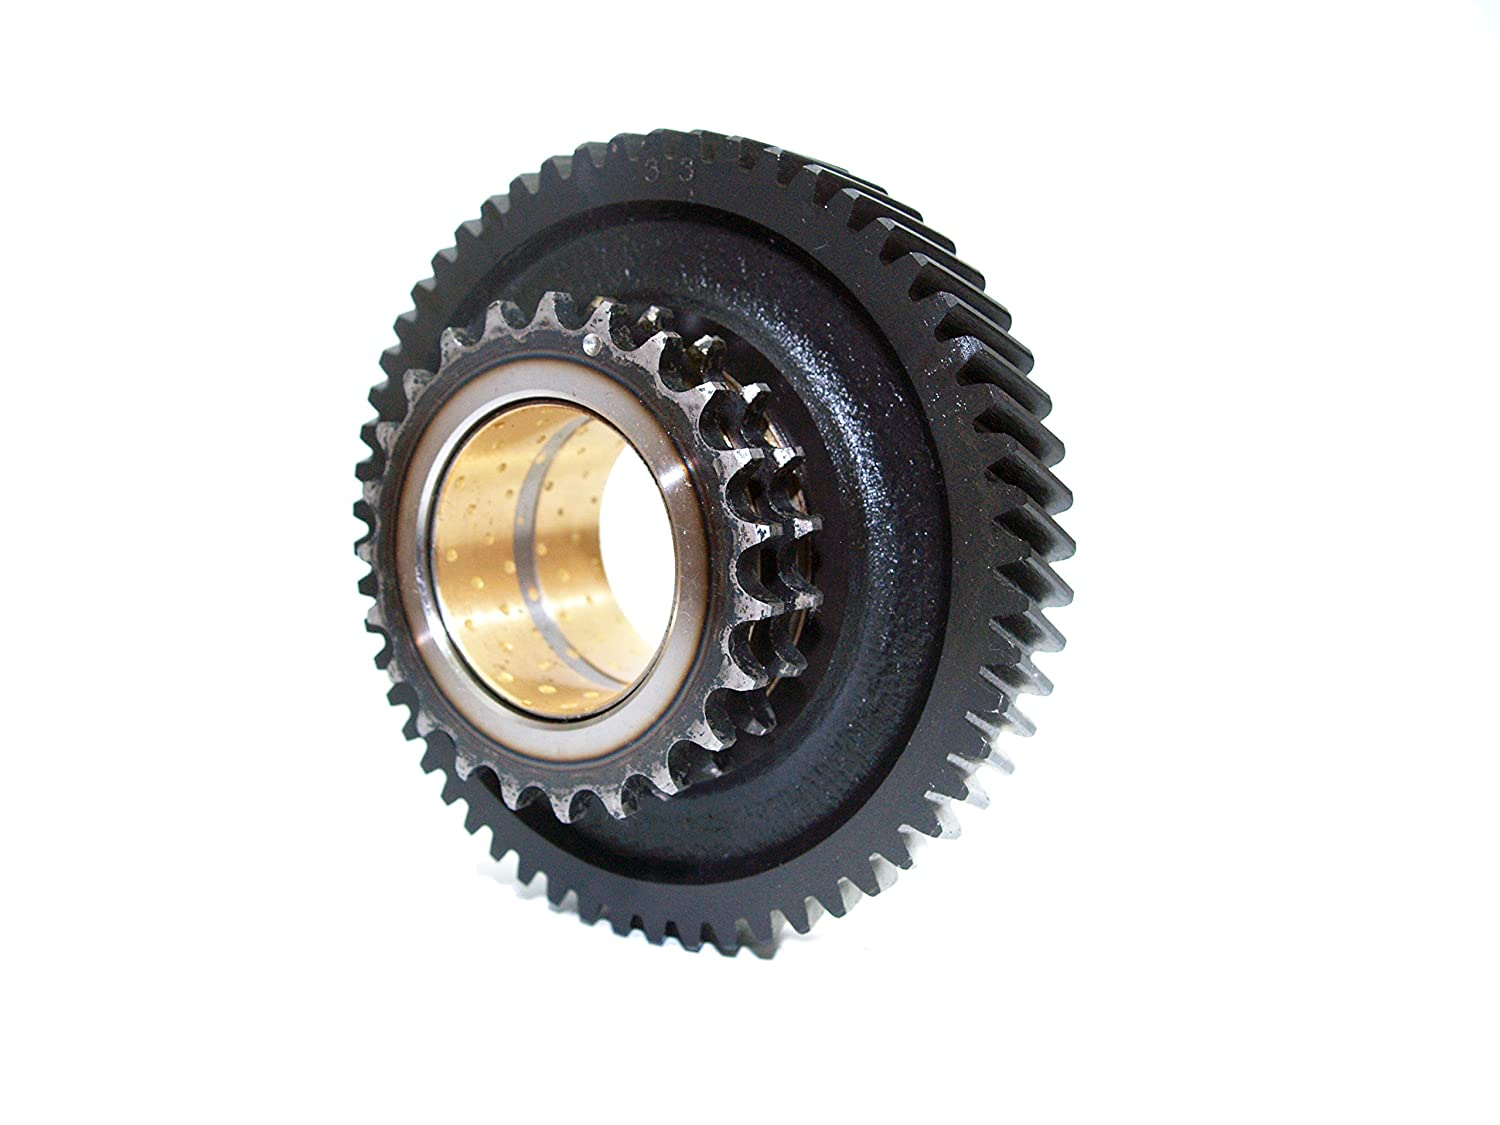 HJL Timing Chain Gear For MITSUBISHI Pajero Delica Canter TRITON 2 8